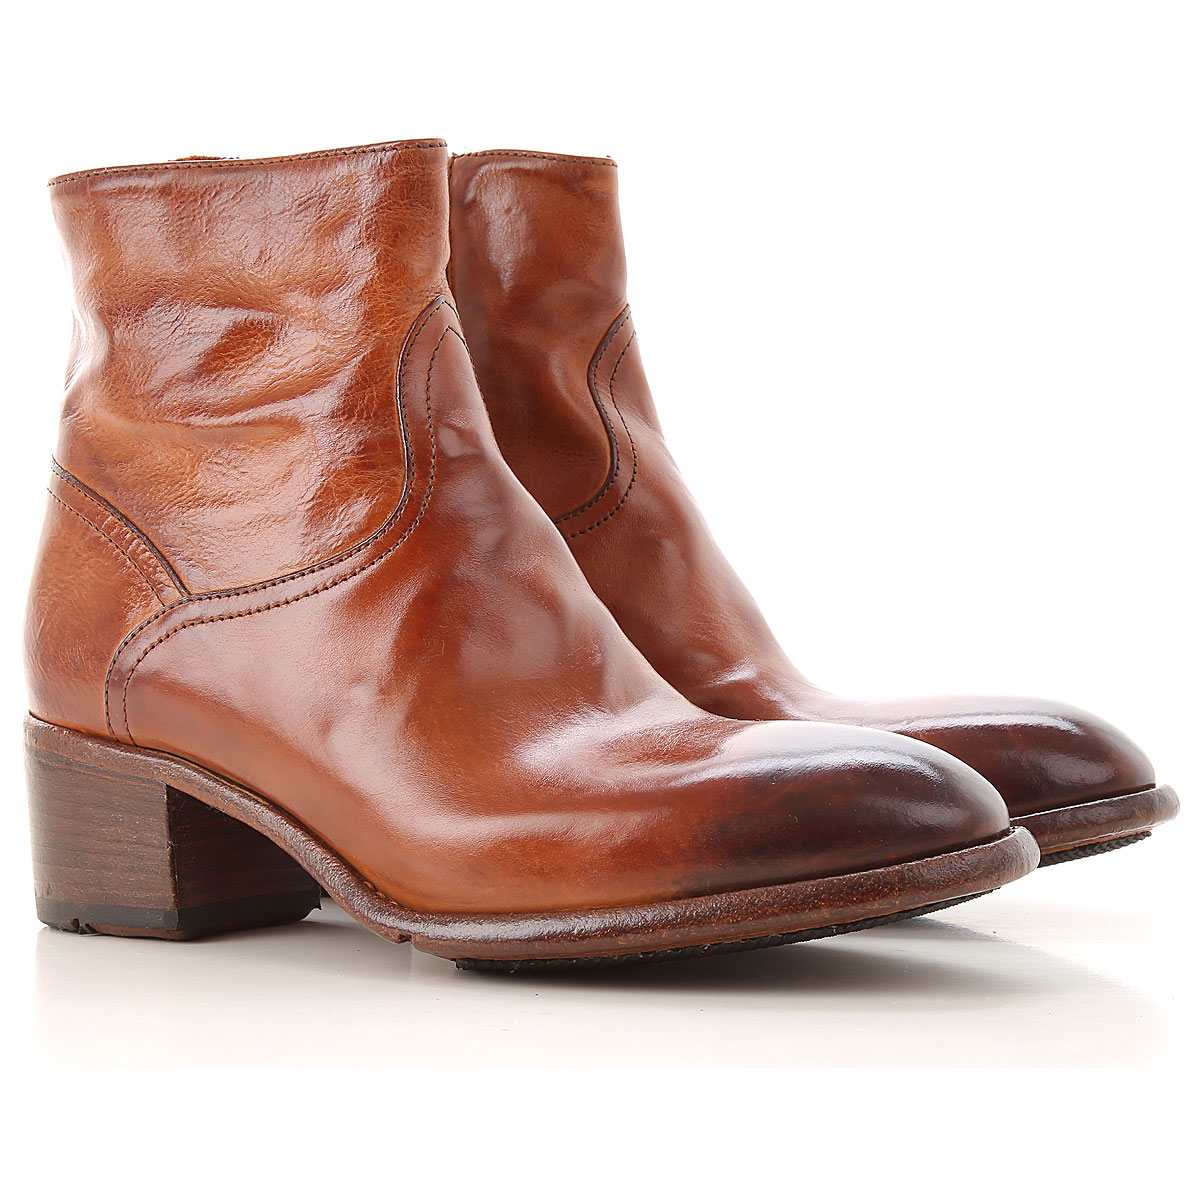 Lemargo Boots for Women, Booties On Sale, Cognac, Leather, 2019, 6 6.5 8 9.5